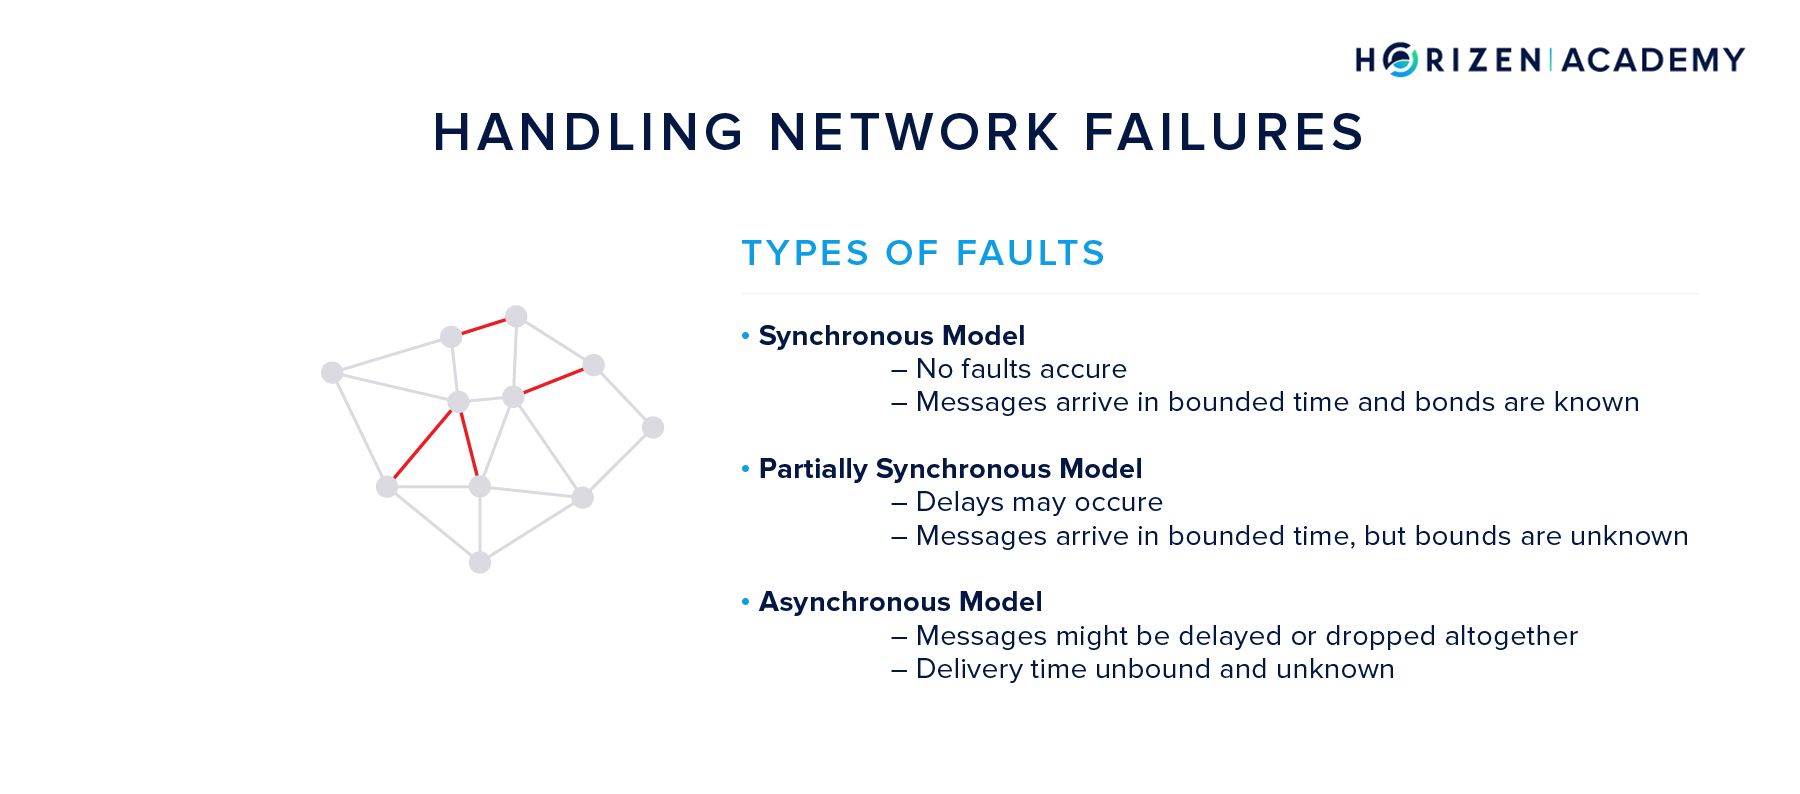 Network Failures in a Distributed Peer-2-Peer (P2P) Network